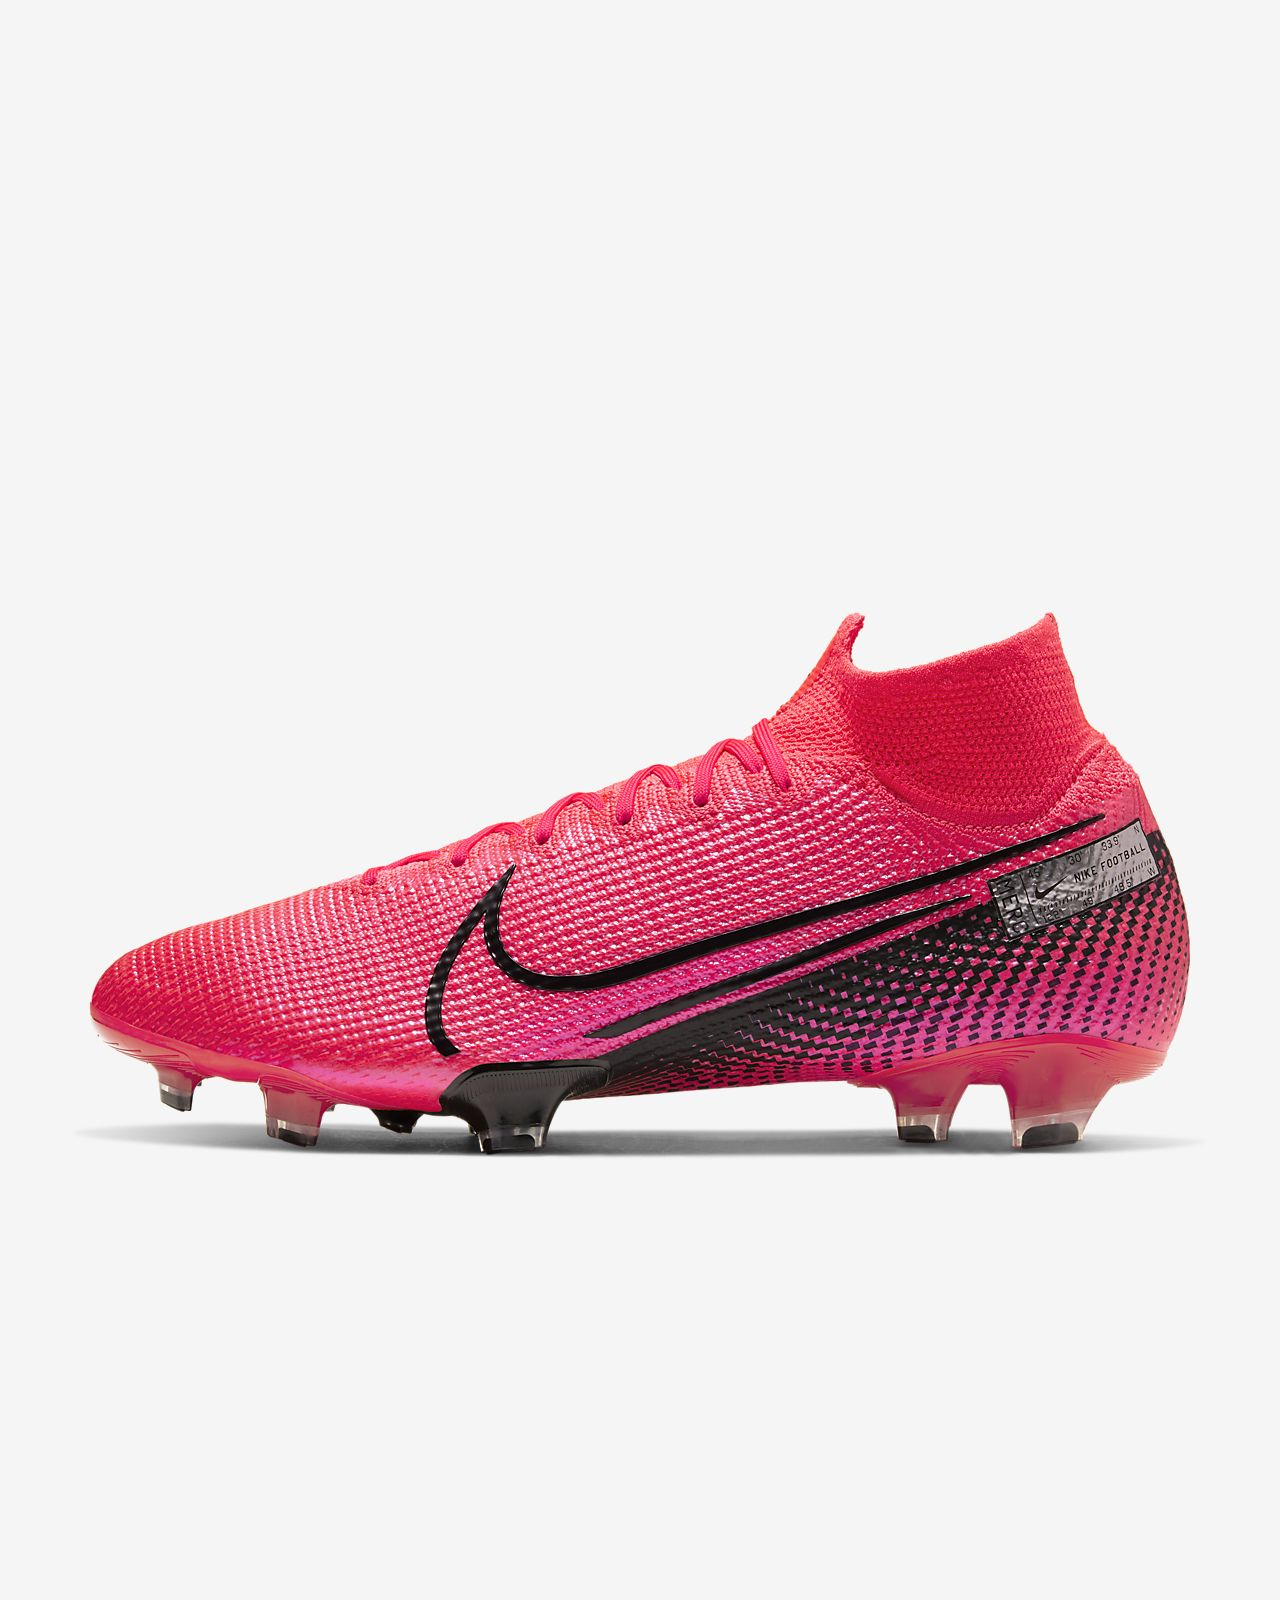 Nike Mercurial Superfly 7 Elite FG Firm-Ground Football Boot